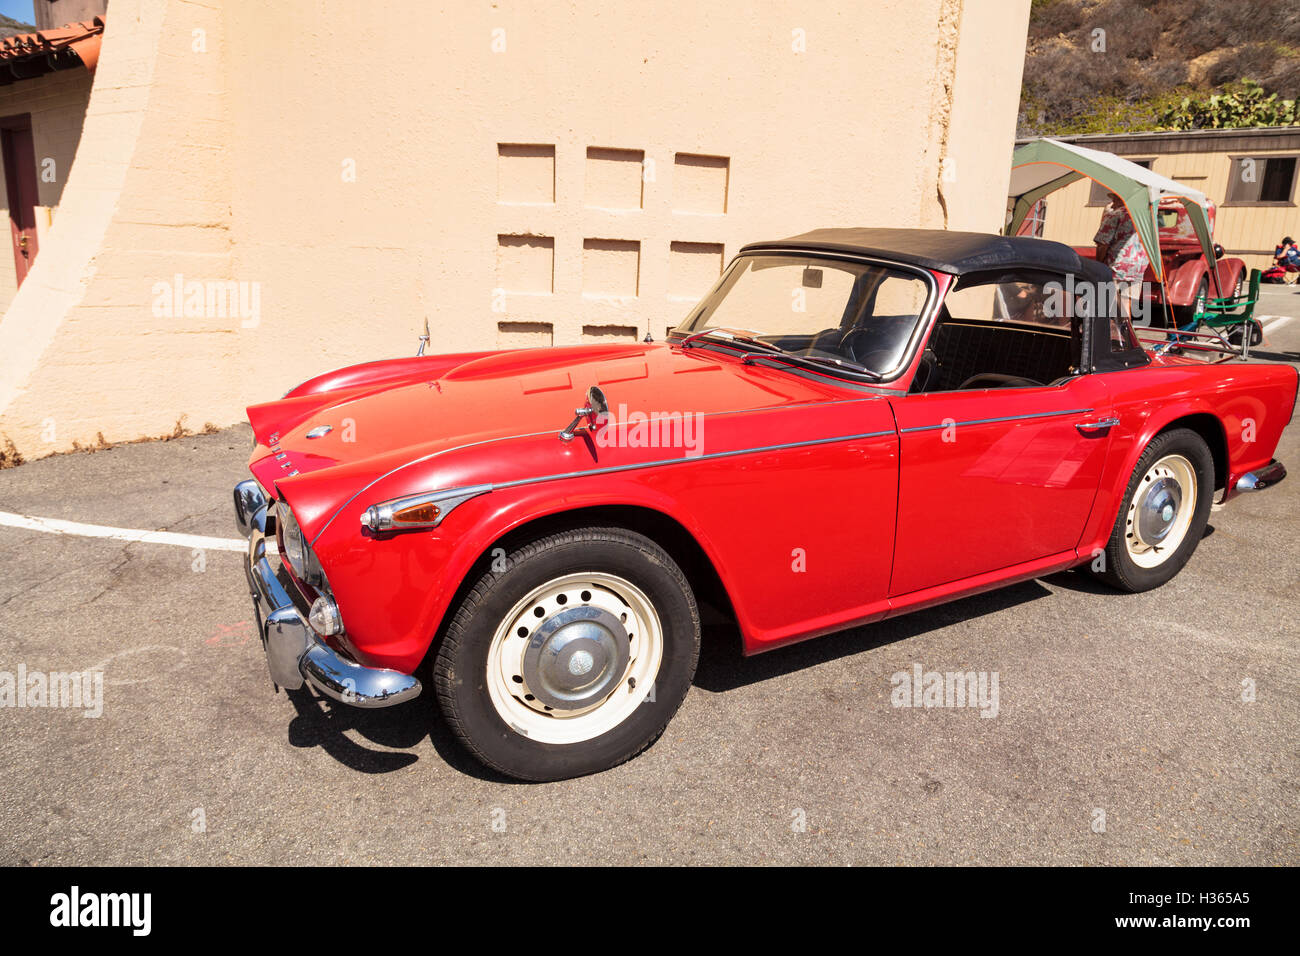 Laguna Beach Ca Usa October 2 2016 Red 1967 Triumph Tr4a Stock 1941 Ford Opera Coupe Displayed At The Rotary Club Of Classic Car Sho